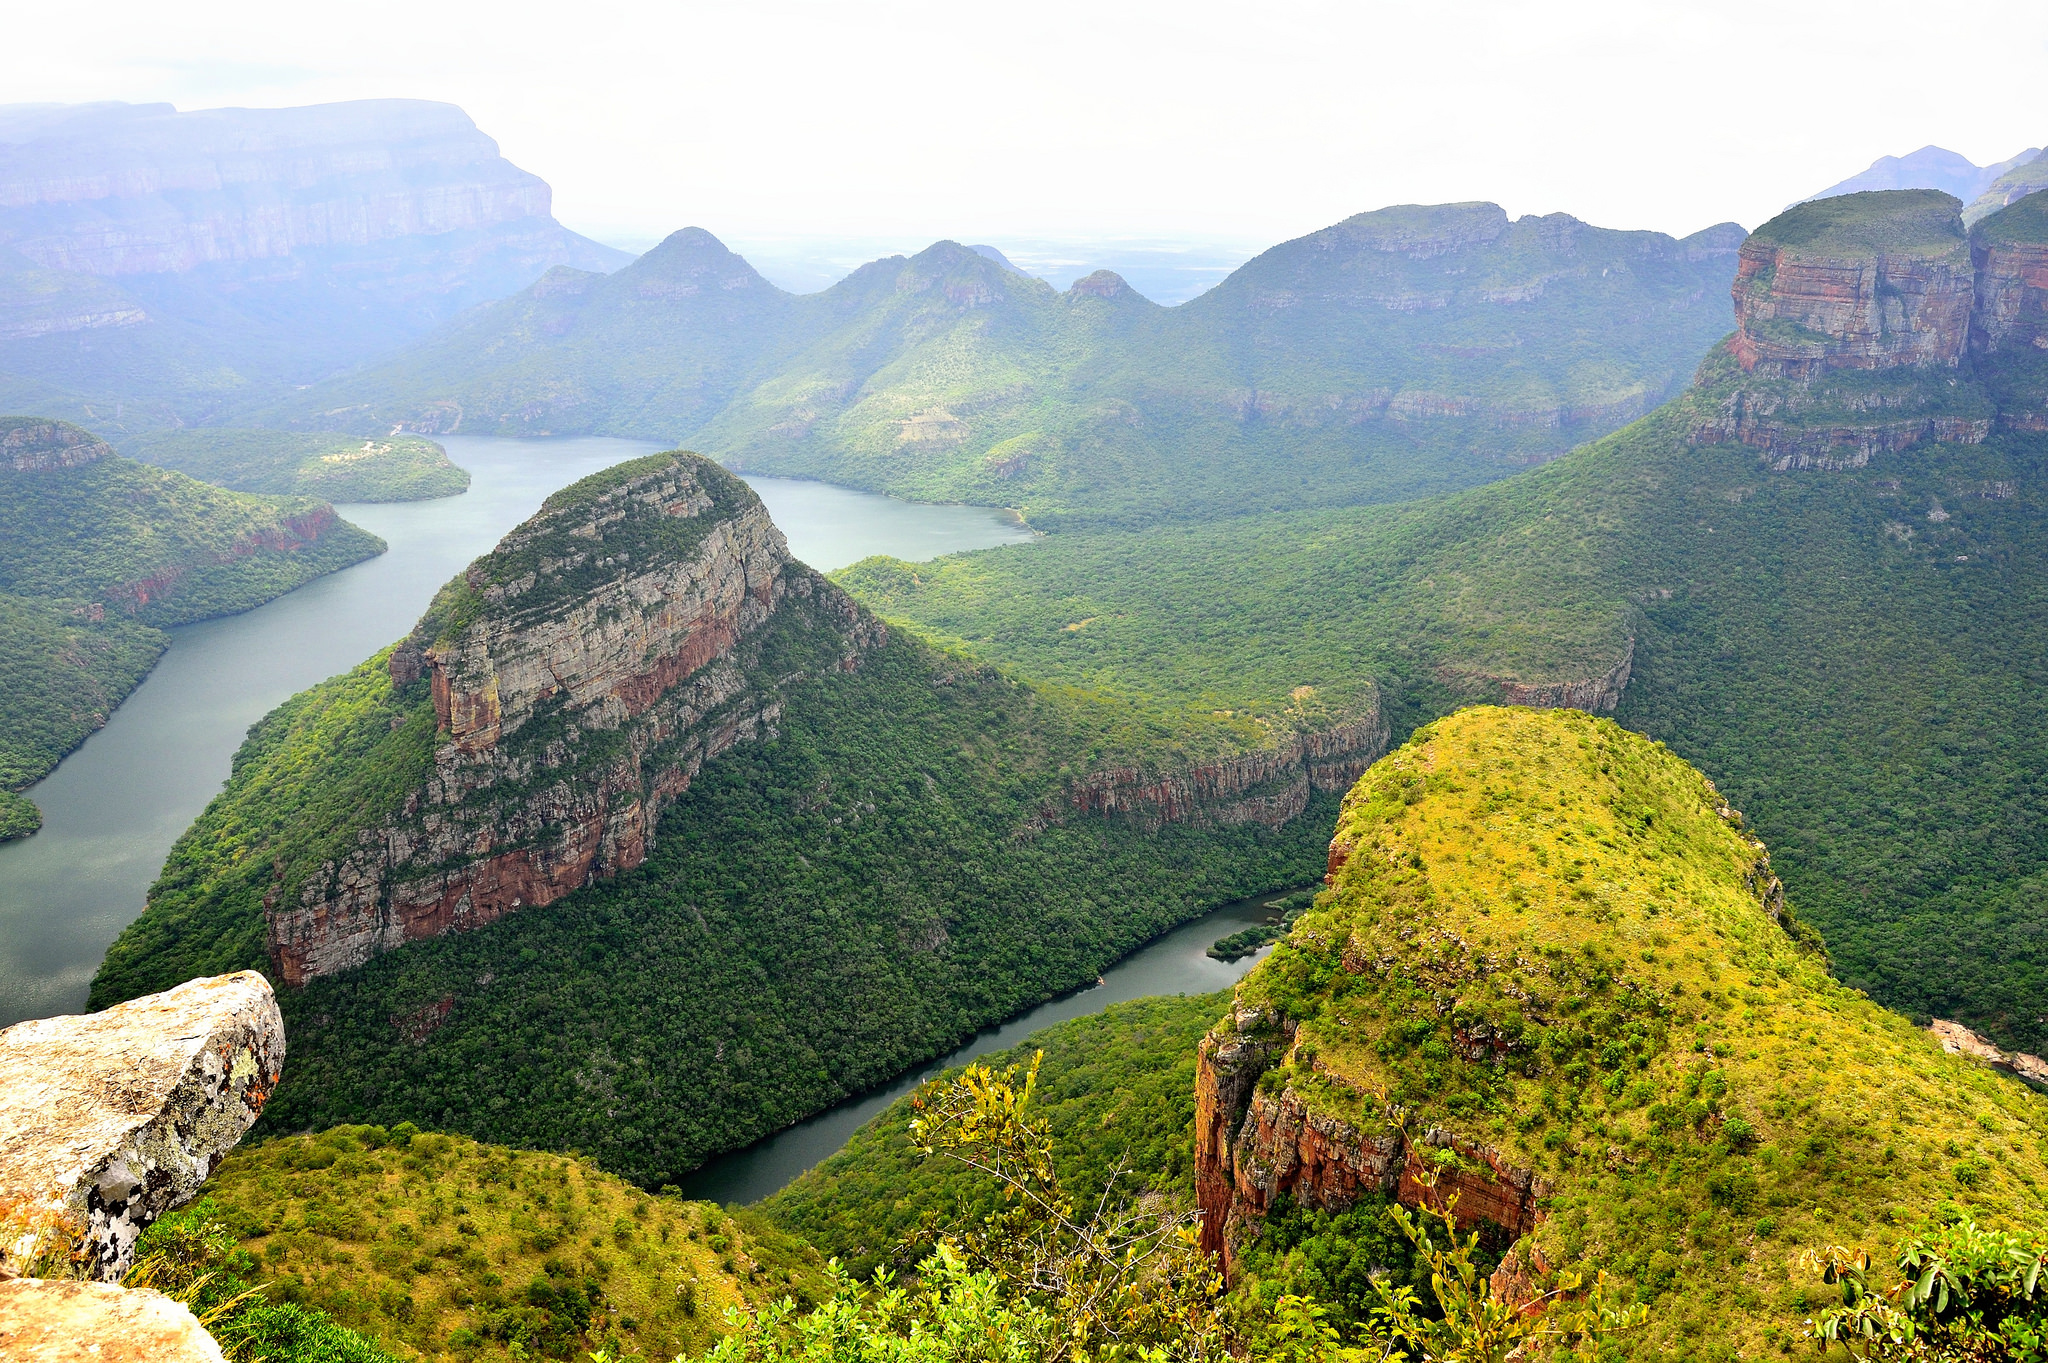 """Blyde River Canyon Dam, Mpumalanga, South Africa"" by South African Tourism via Flickr Creative Commons"